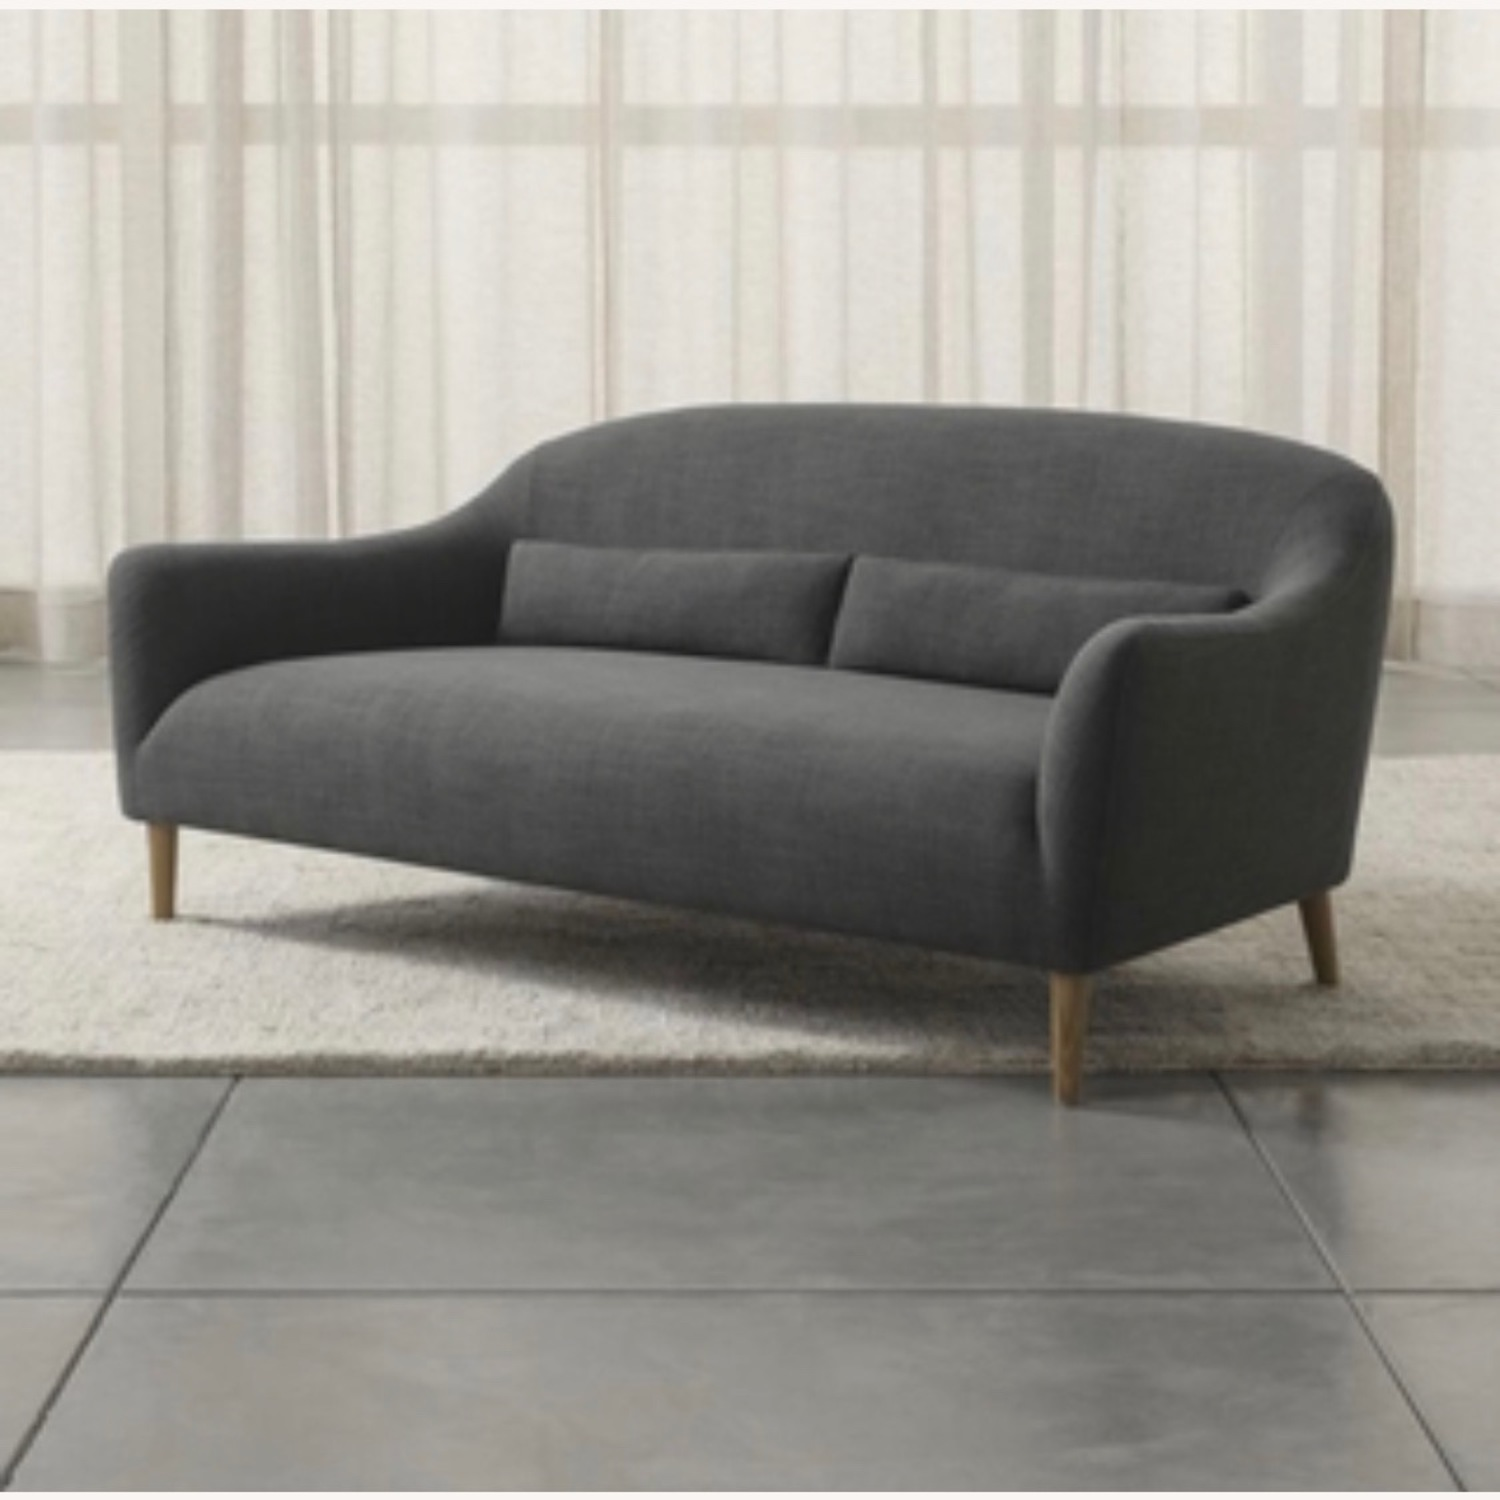 Crate and Barrel Pennie Sofa - image-1